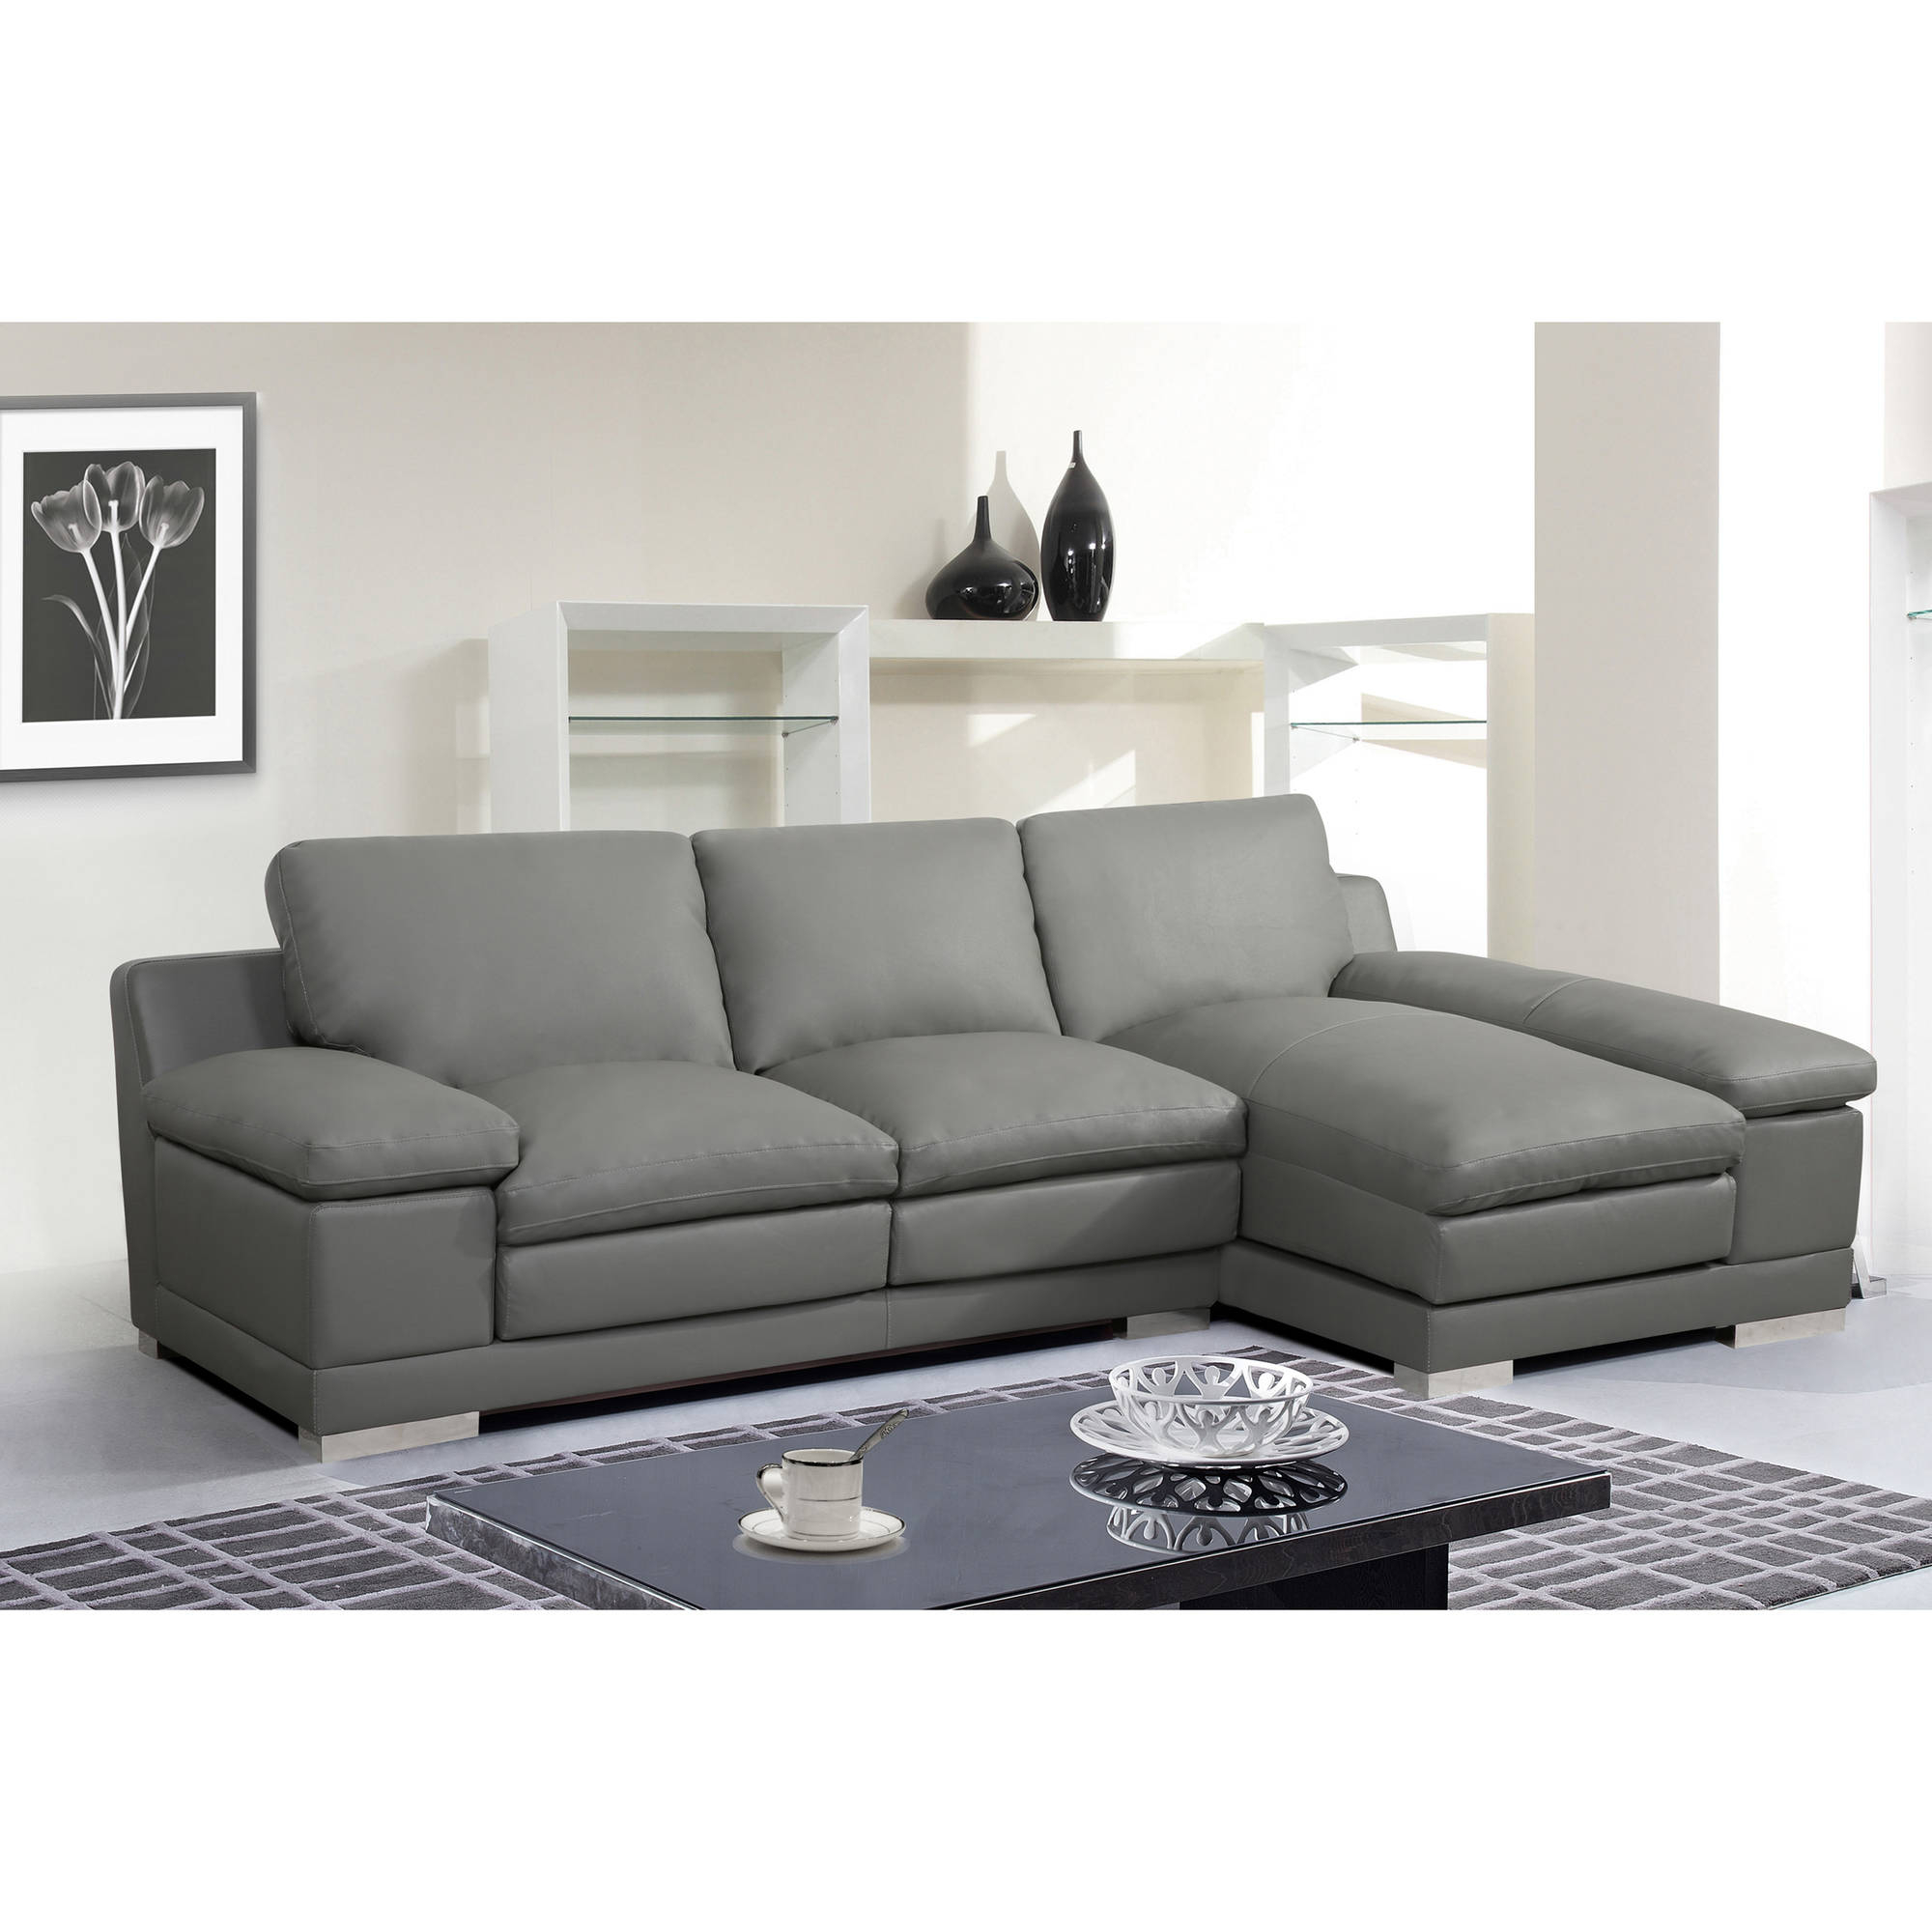 Adrian Contemporary Bonded Leather Right Facing 2 Piece Pertaining To Florence Mid Century Modern Right Sectional Sofas Cognac Tan (View 1 of 15)